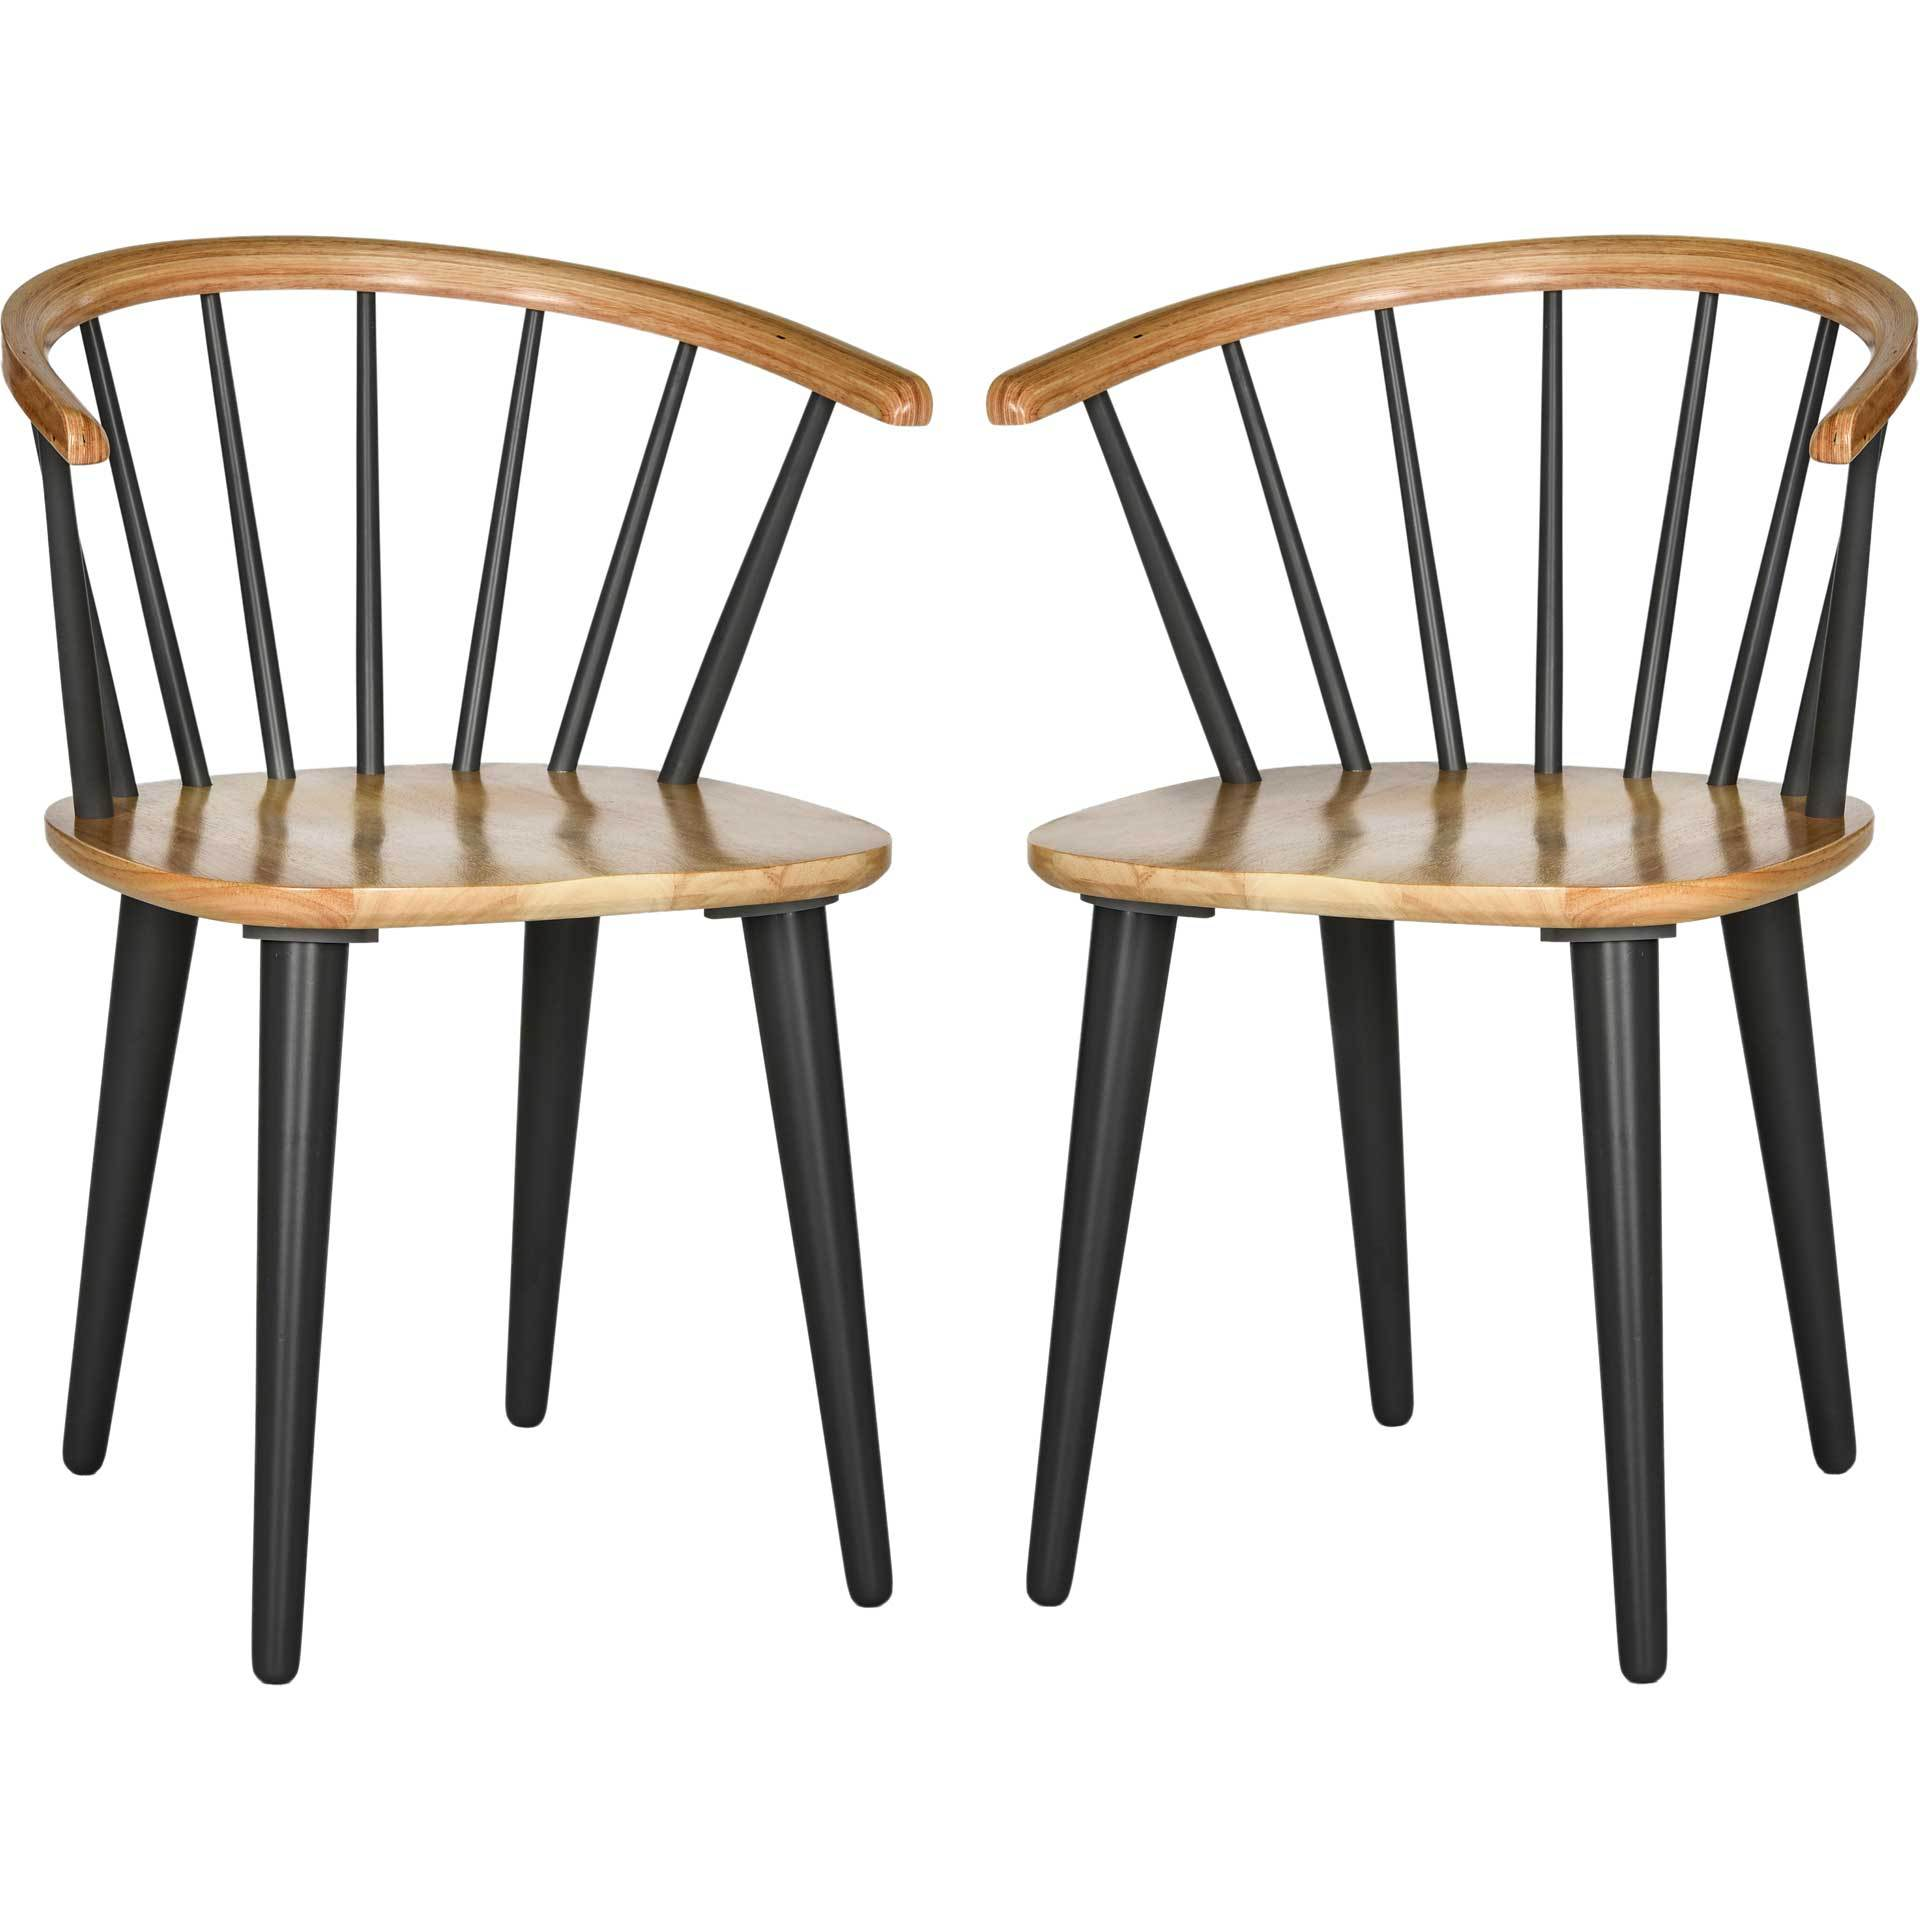 Blair Curved Spindle Side Chair Natural/Gray (Set of 2)